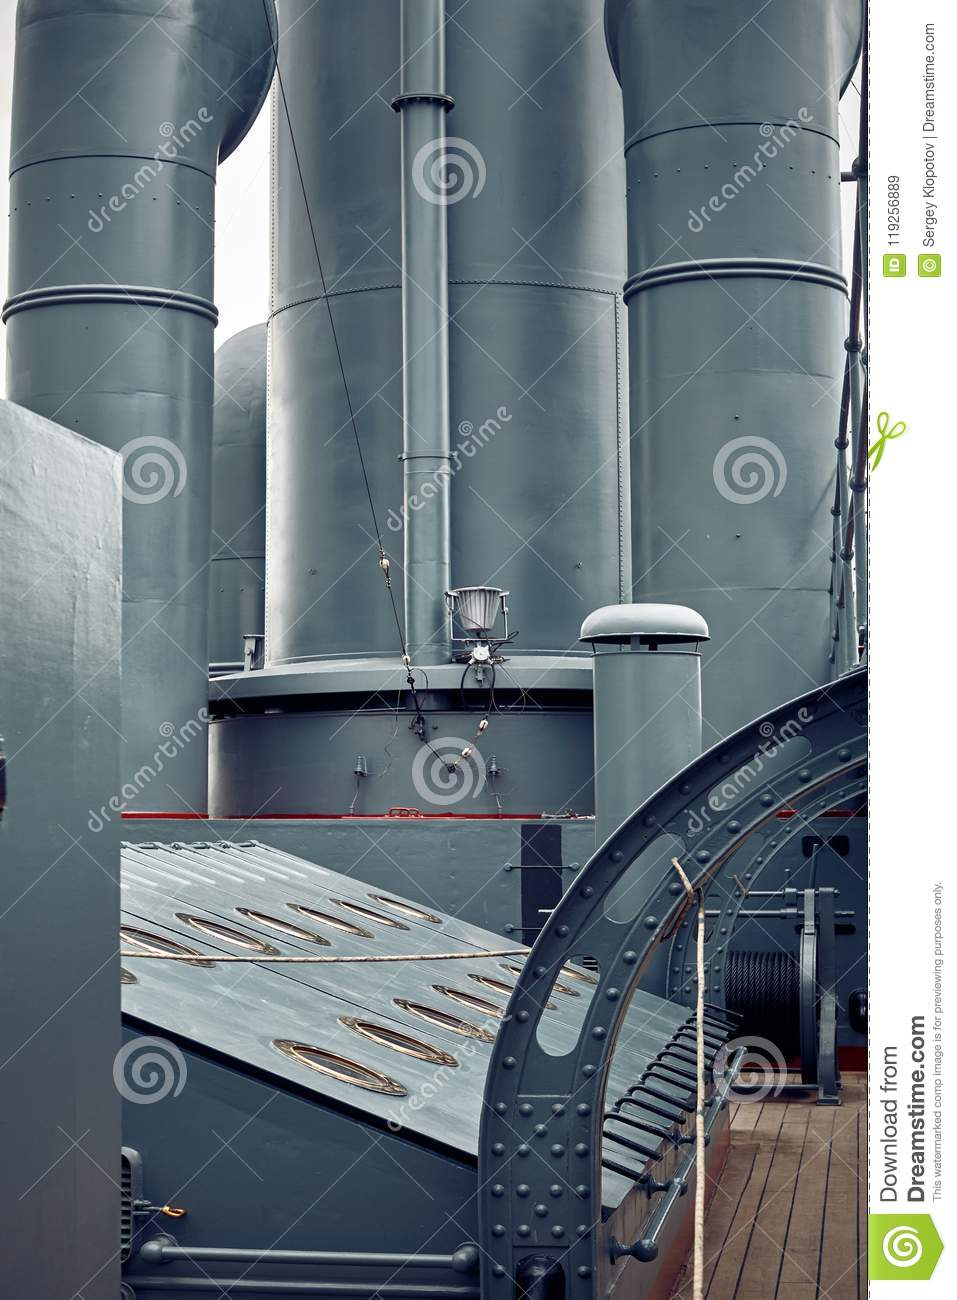 Steam Ship Engine Room: The Steam Pipes Of The Engine Room On The Upper Deck Of